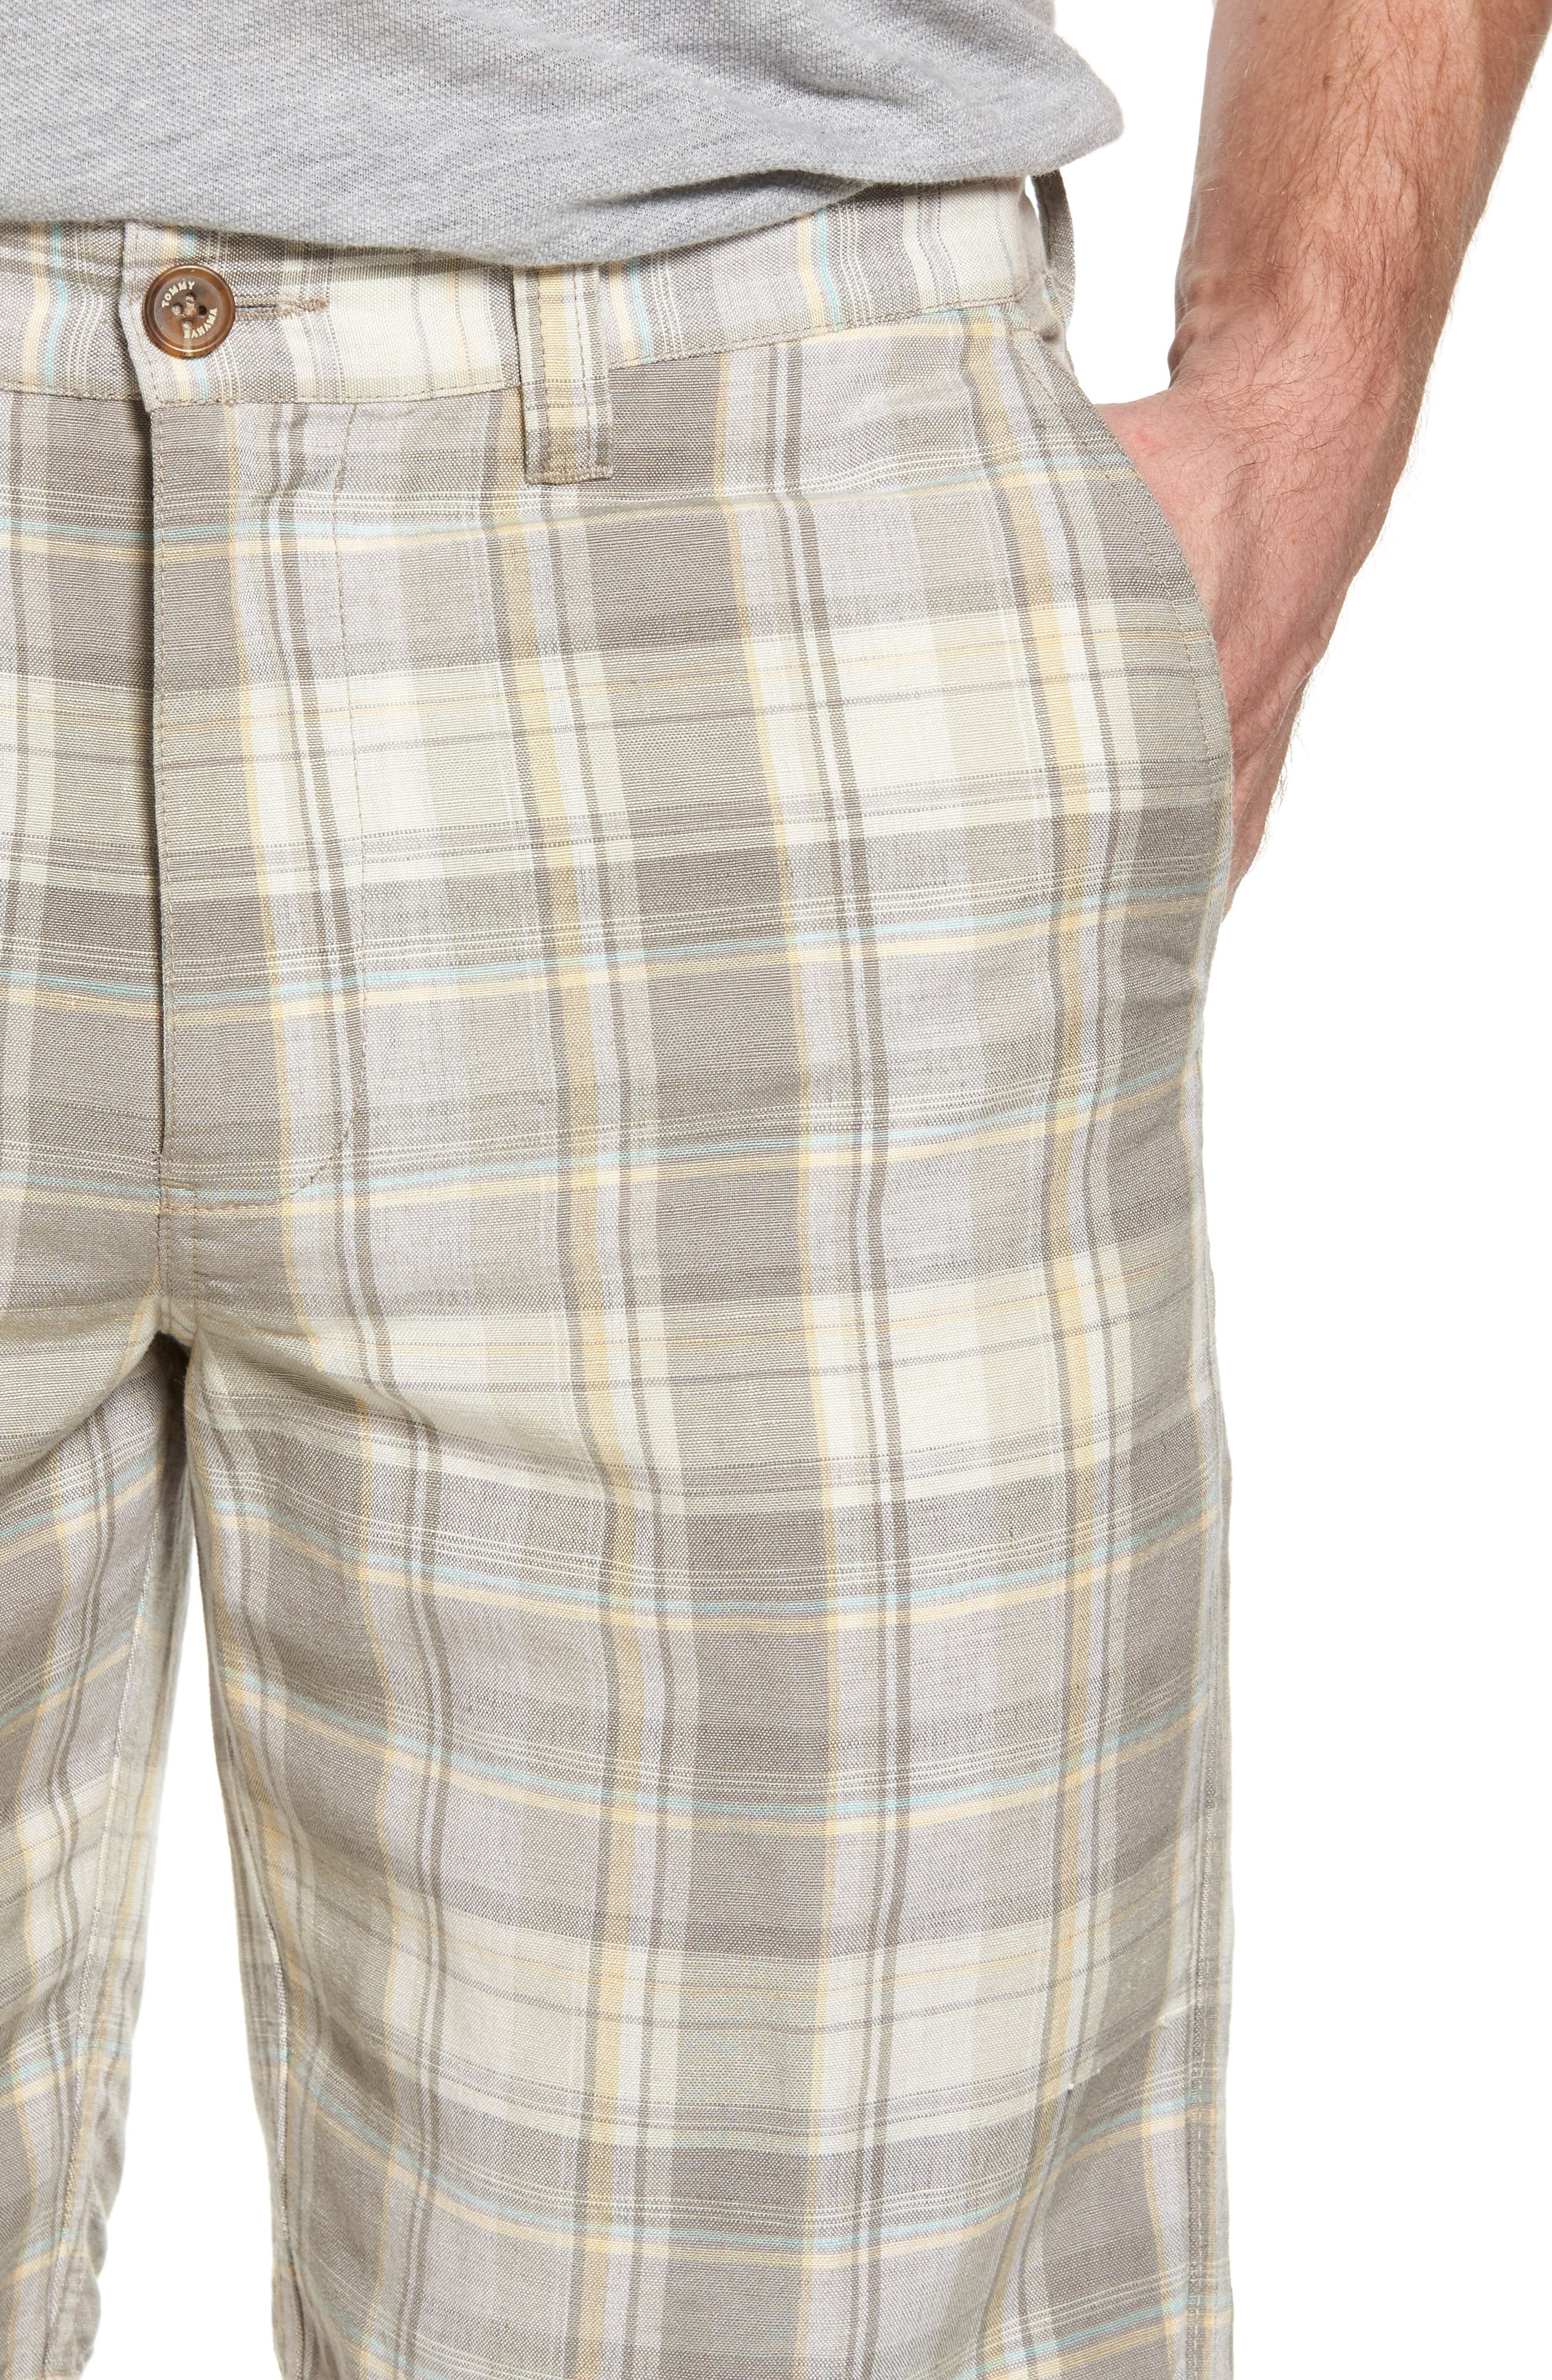 Coastal Dunes Plaid Shorts,                             Alternate thumbnail 4, color,                             250